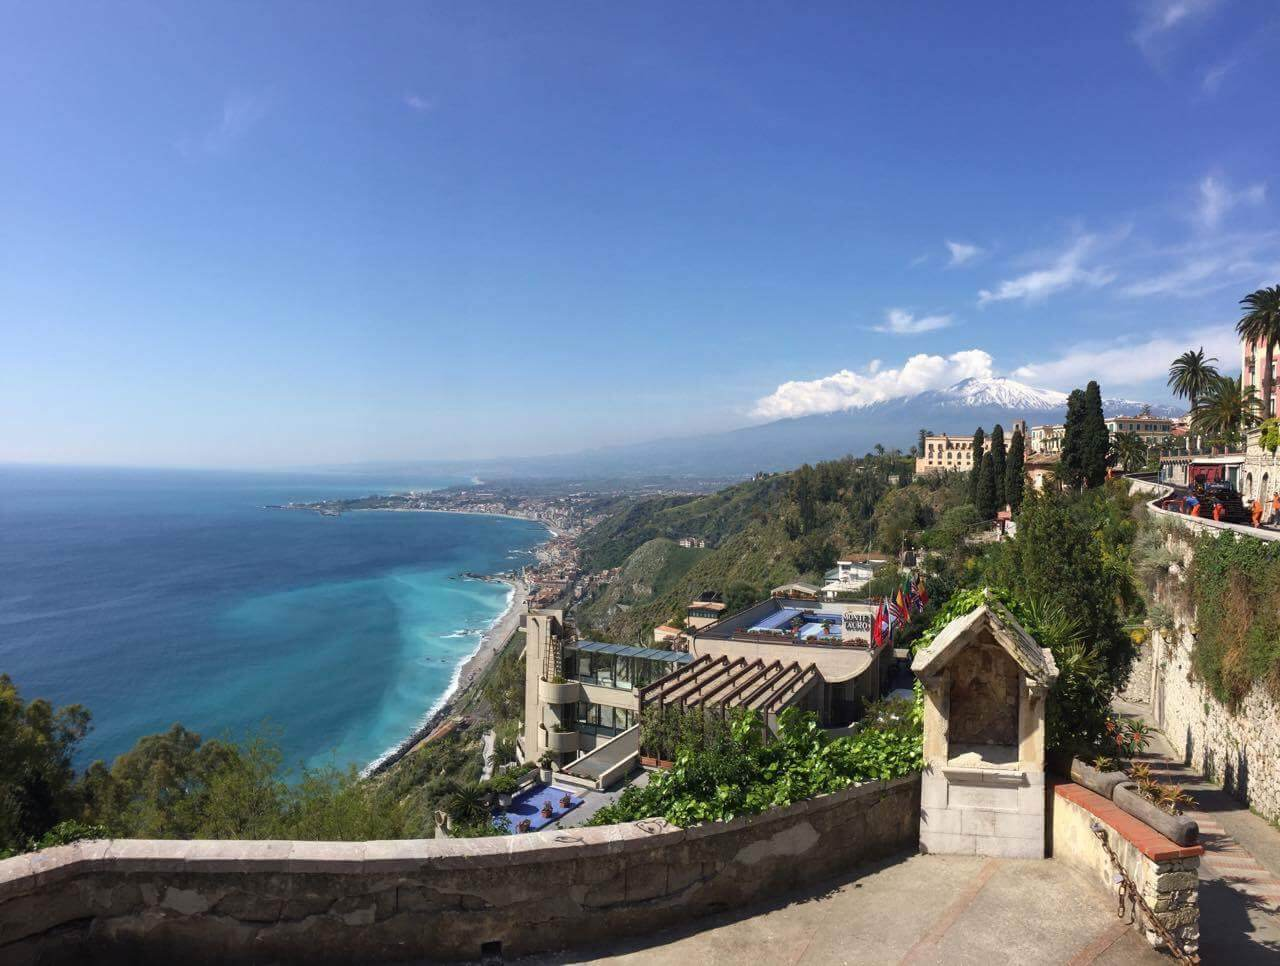 With these kind of views in Taormina, you won't ever want to leave. The snow a top of Mt. Etna contrasted by the blue lagoon down below really can throw off your senses.